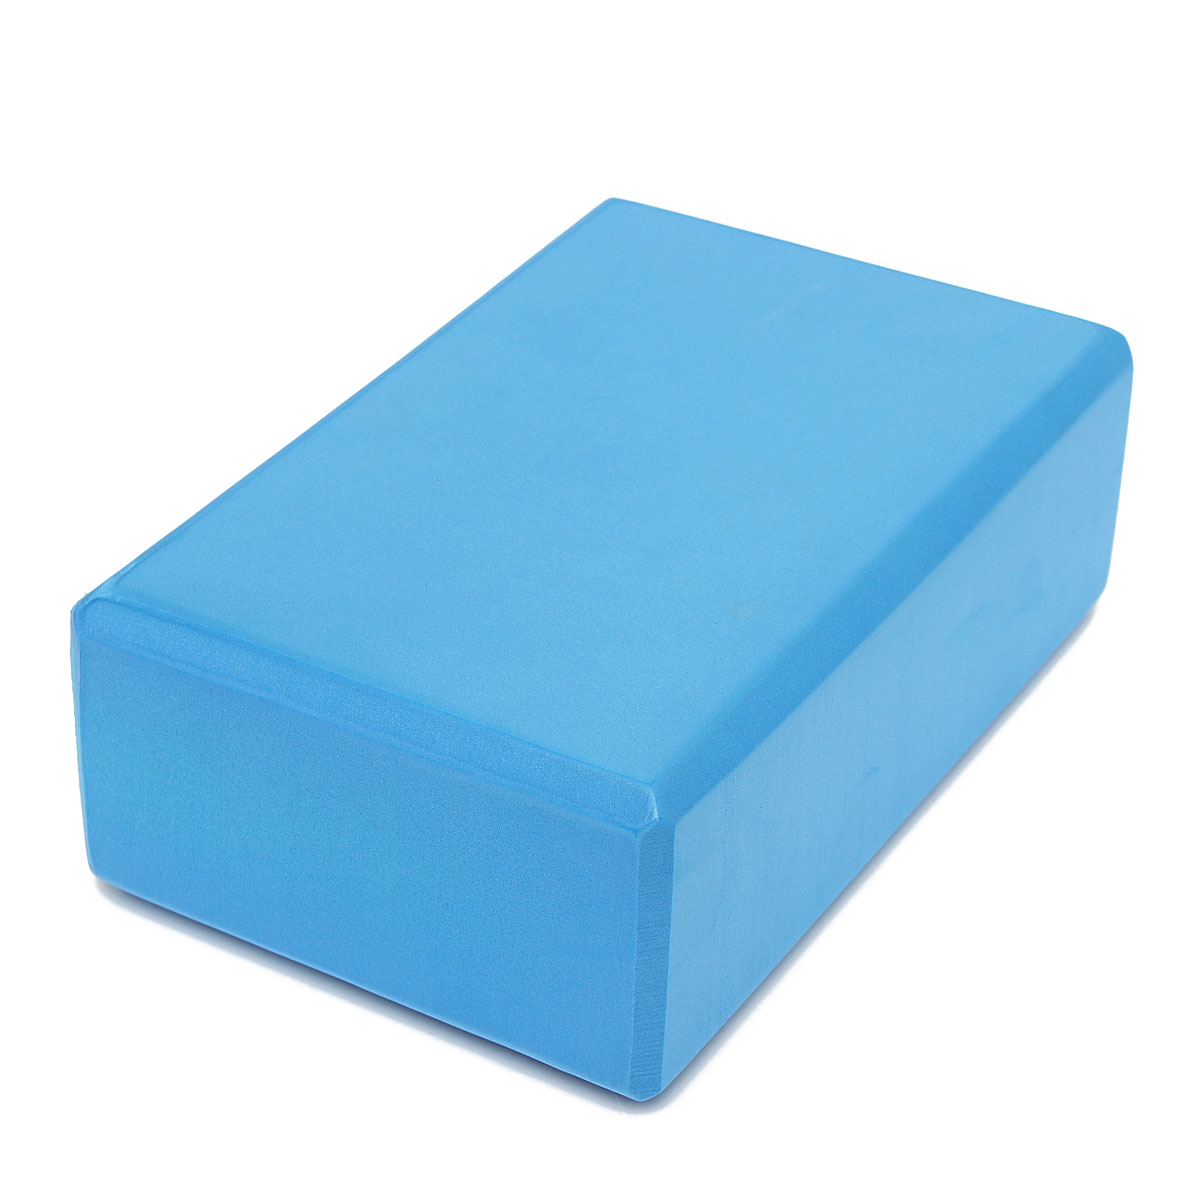 High Density Yoga Pilates EVA Foam Block Brick Exercise Gym Exercise Keep Fit